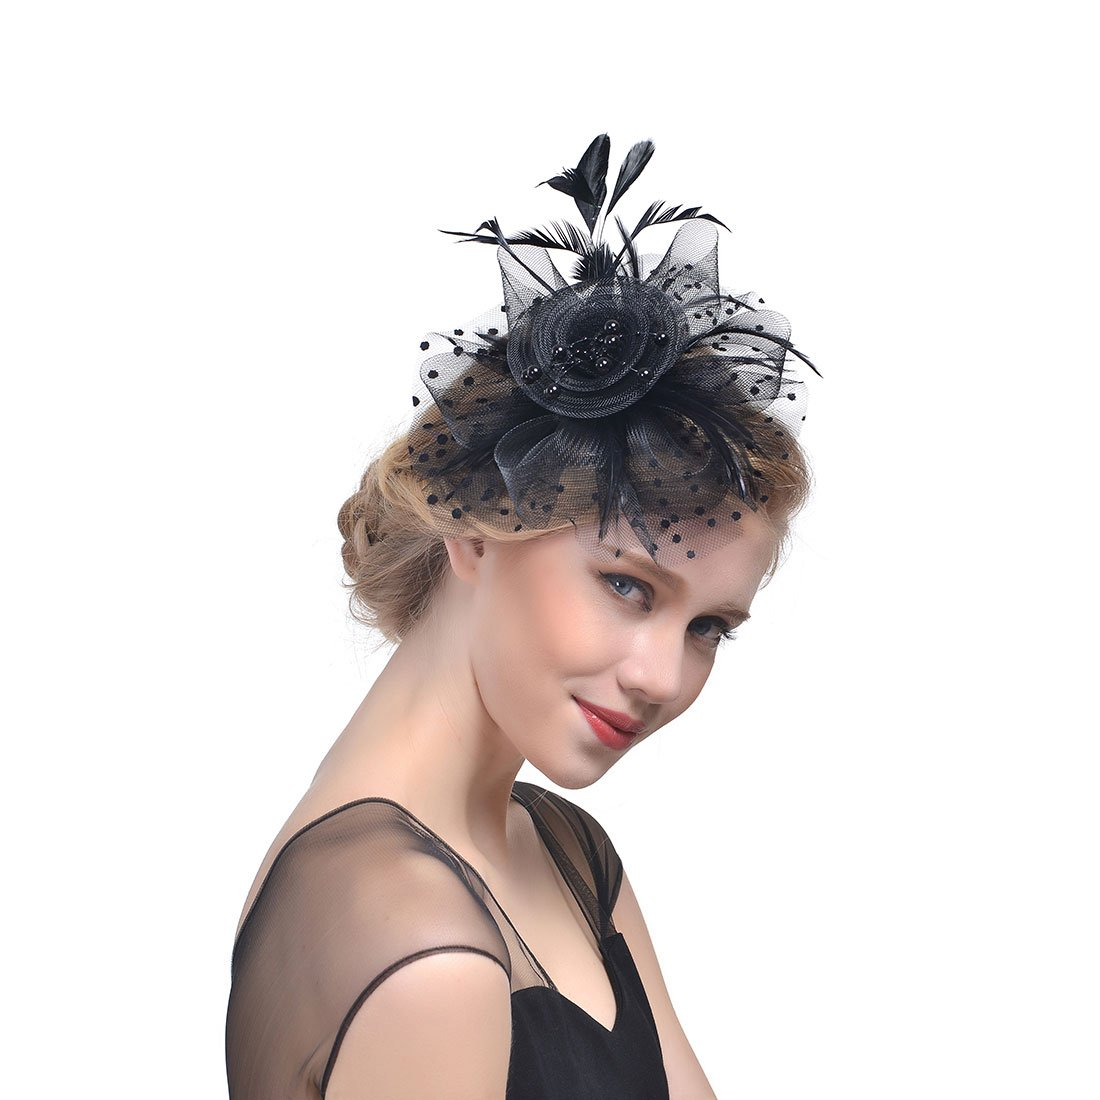 Lanzom Girls Lady Women Fascinators Hat Flower Mesh Feathers Hair Clip Tea Party Headband Kentucky Derby Wedding Cocktail Headwear (Black)